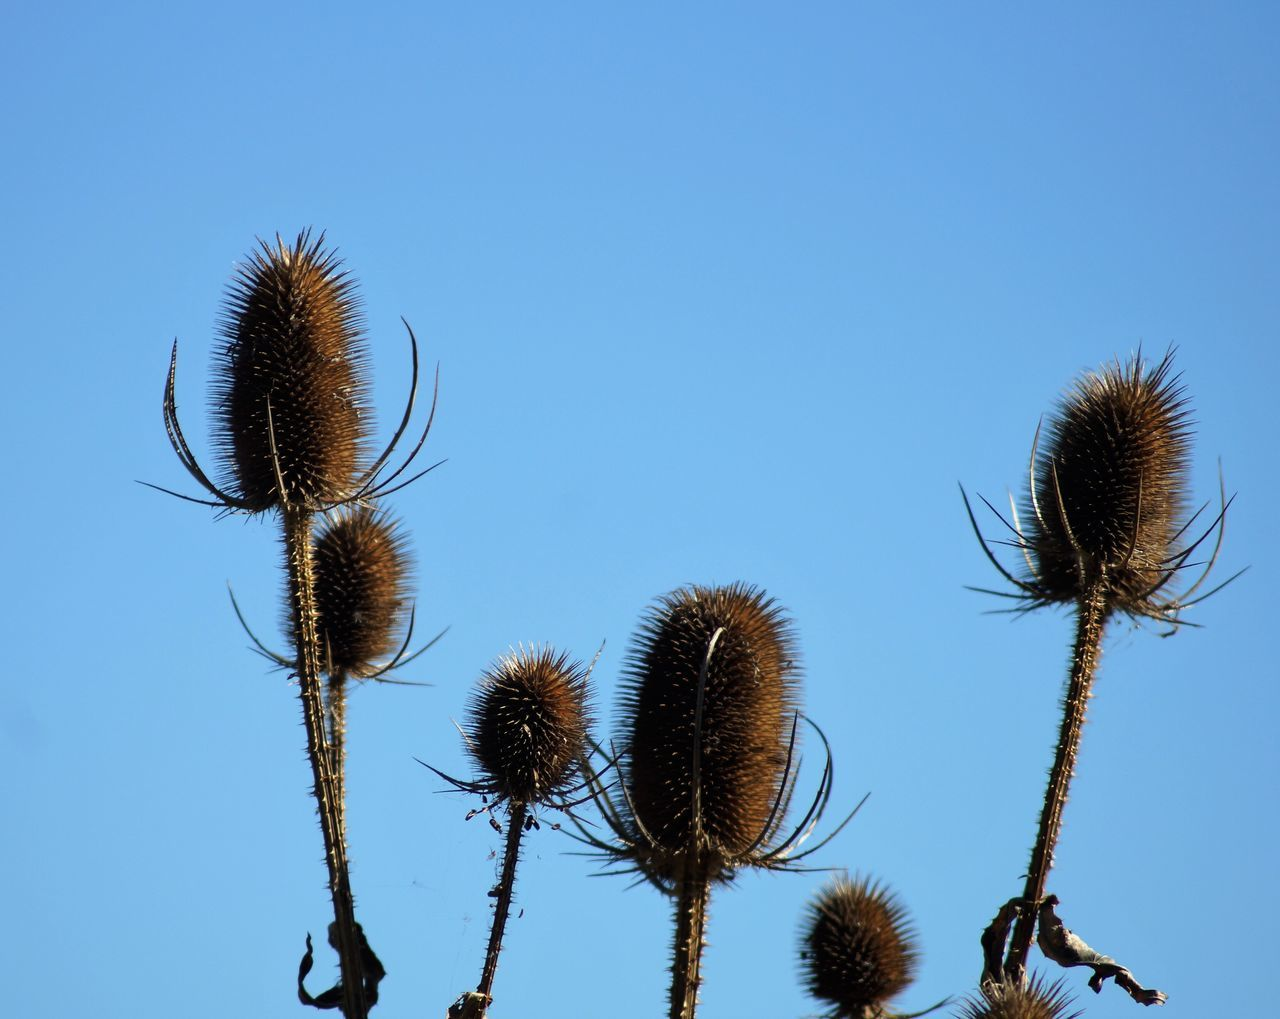 Beauty In Nature Blue Clear Sky Close-up Day Dried Plant Dry Flower Focus On Foreground Fragility Growth Low Angle View Nature New Life No People Outdoors Plant Spiked Spiky Stem Tall - High Thistle Thorn Tranquility Uncultivated